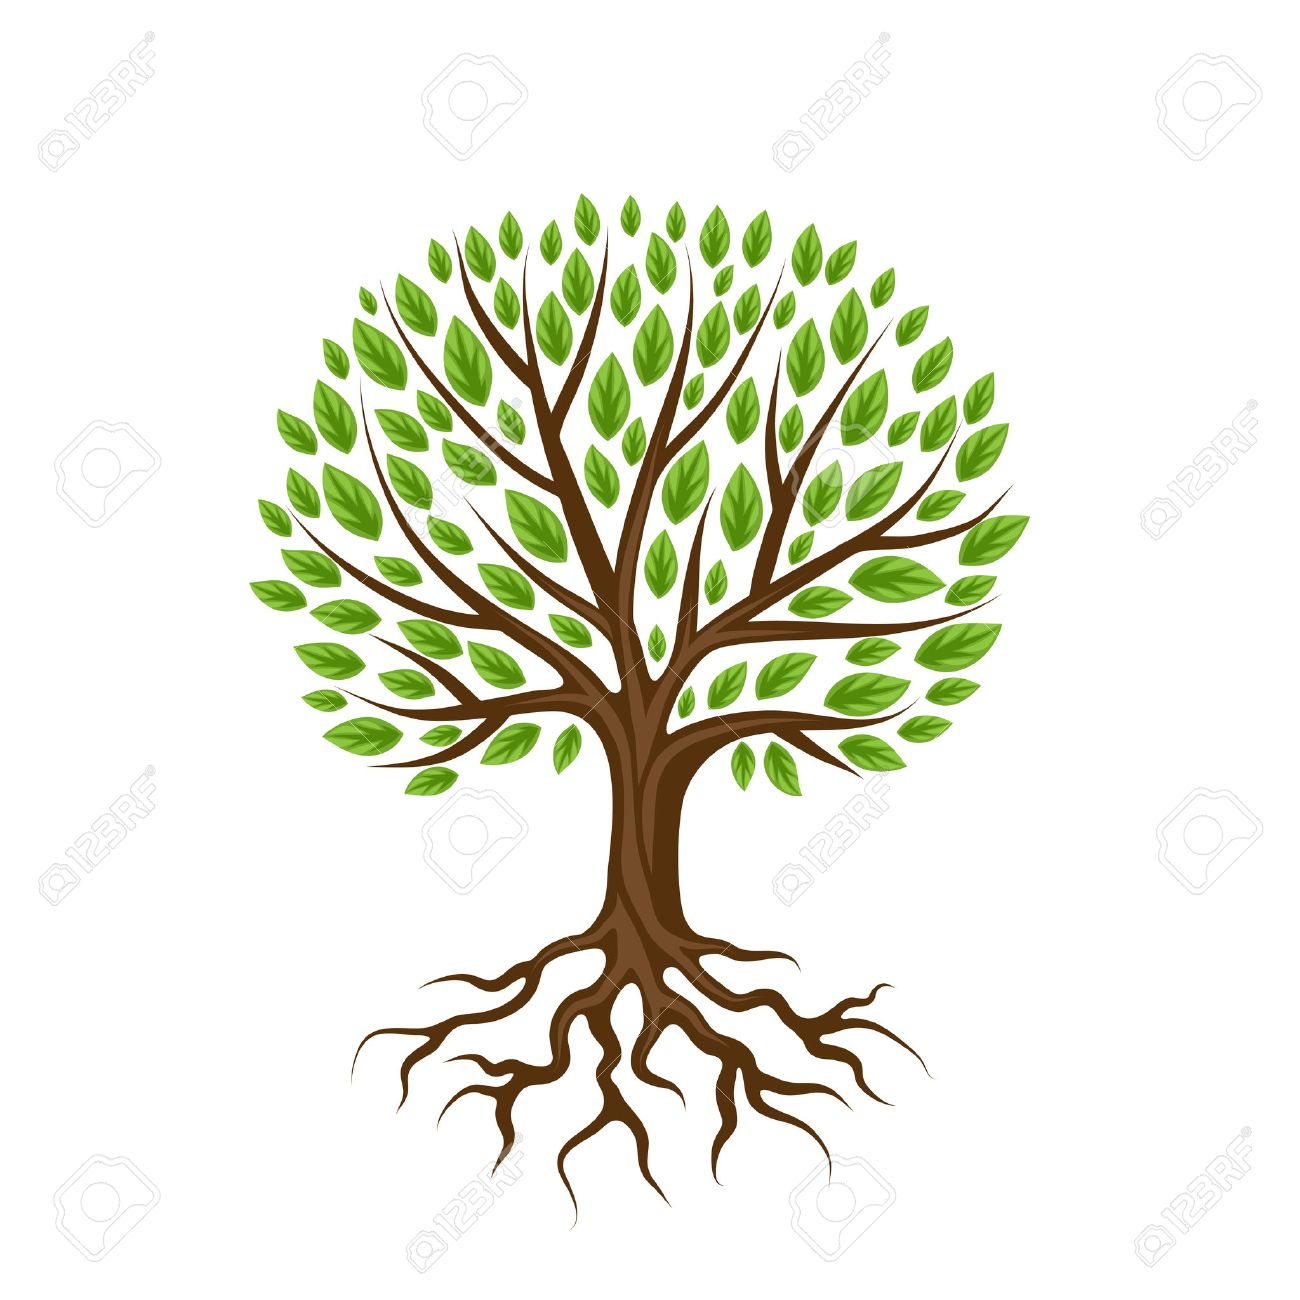 Tree Roots Stock Photos. Royalty Free Tree Roots Images